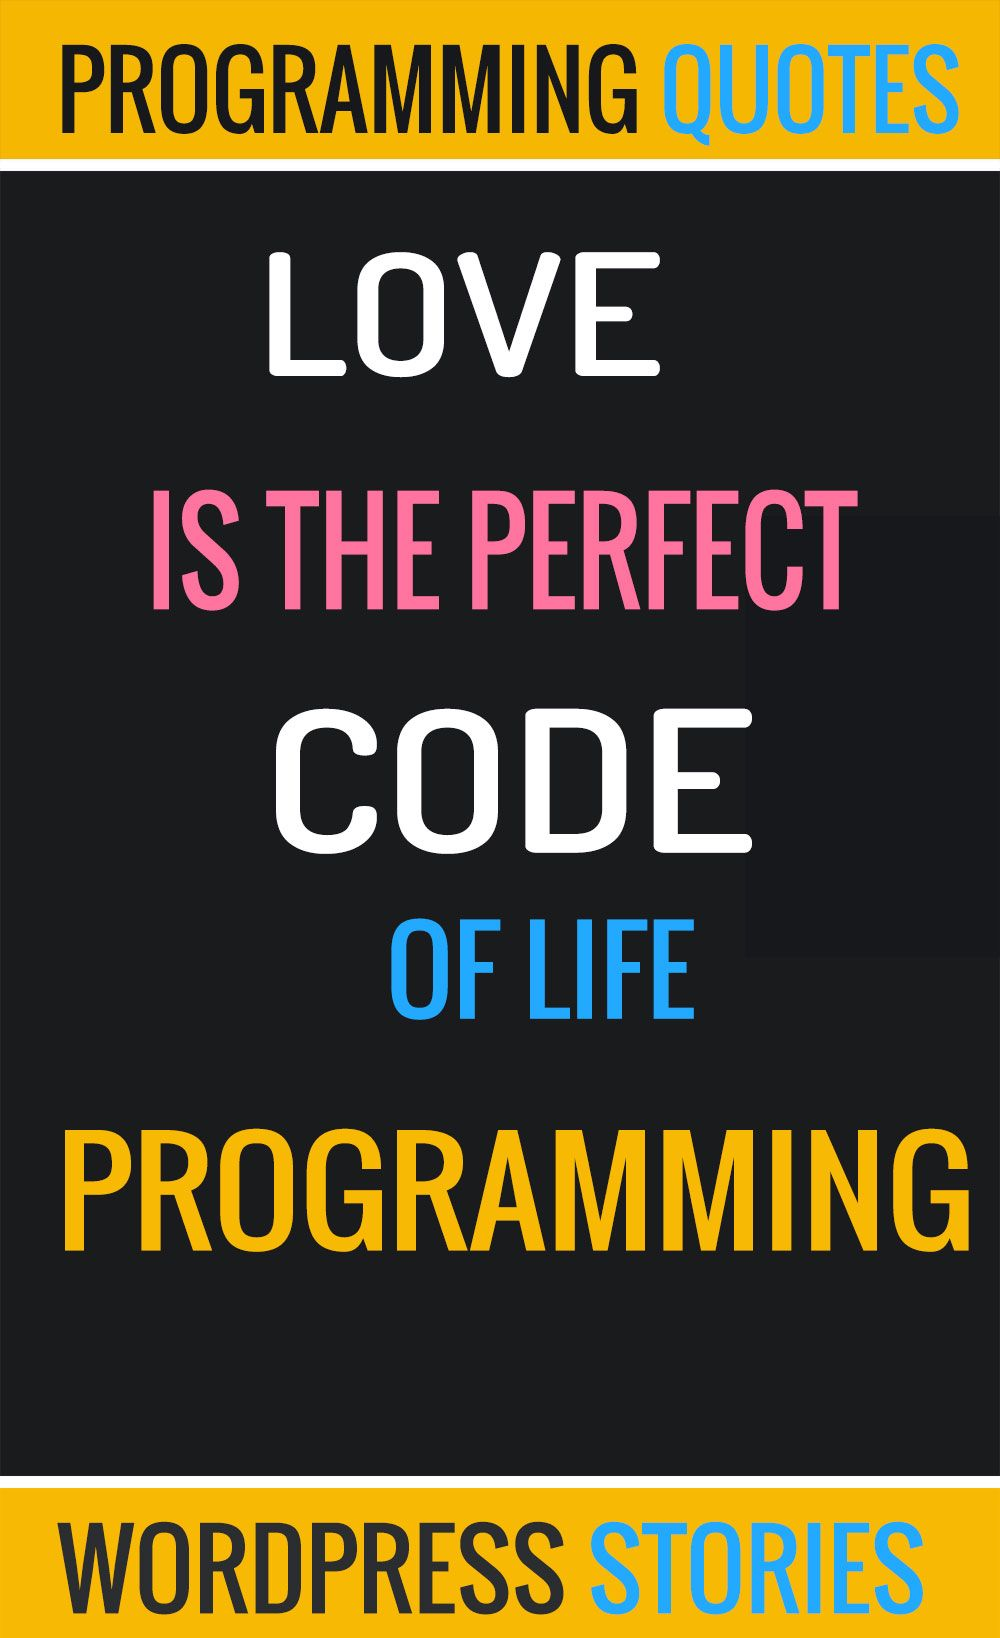 Coding And Computer Quotes Engineer Quotes Engineering Quotes Computer Quote Quotes